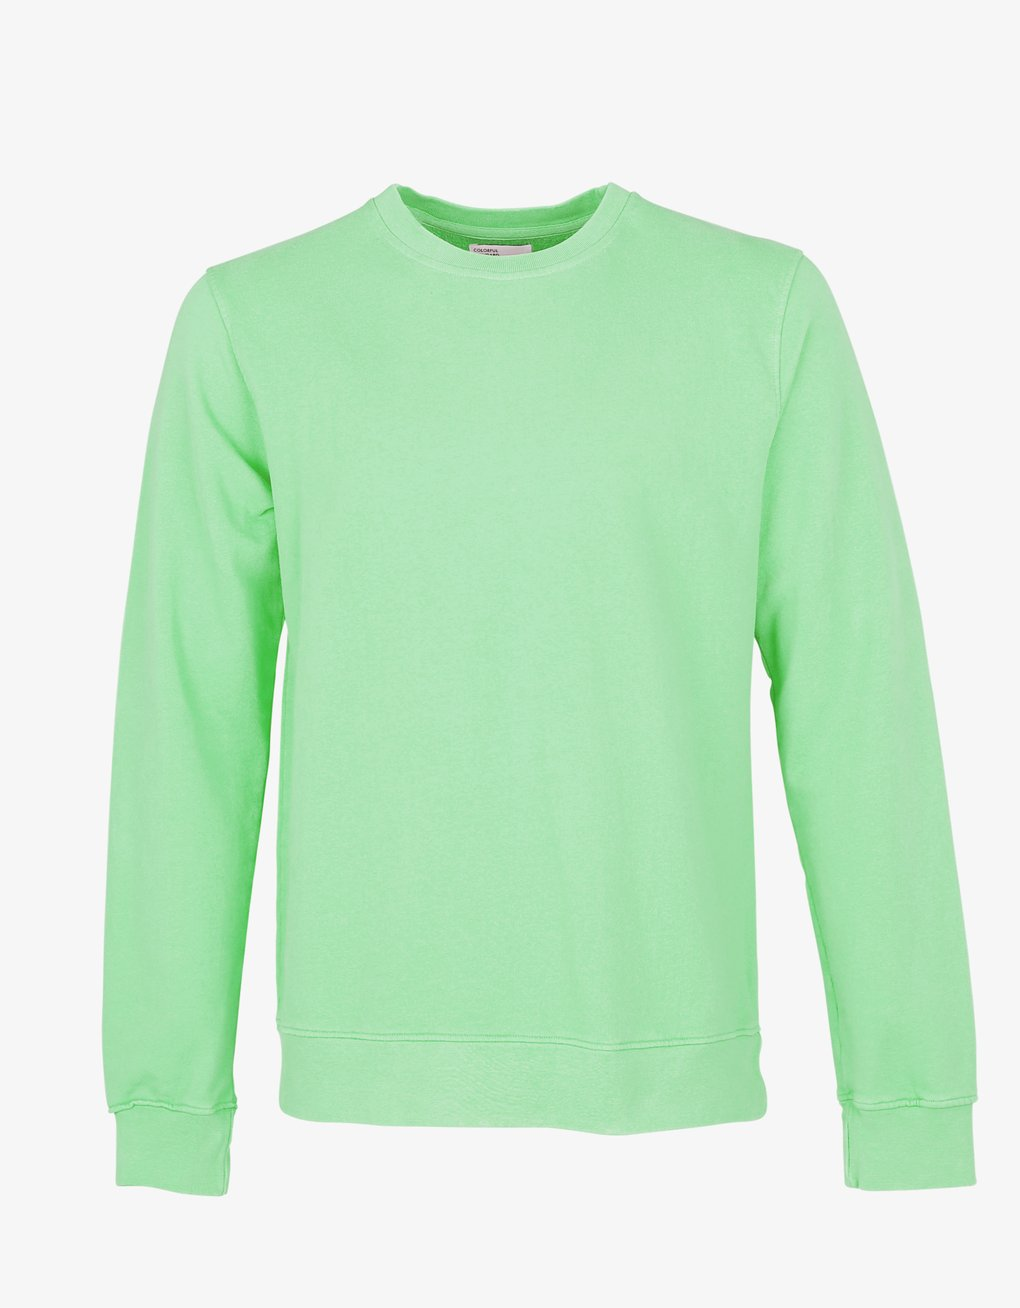 Unisex Classic Organic Crew Sweater - Faded Mint